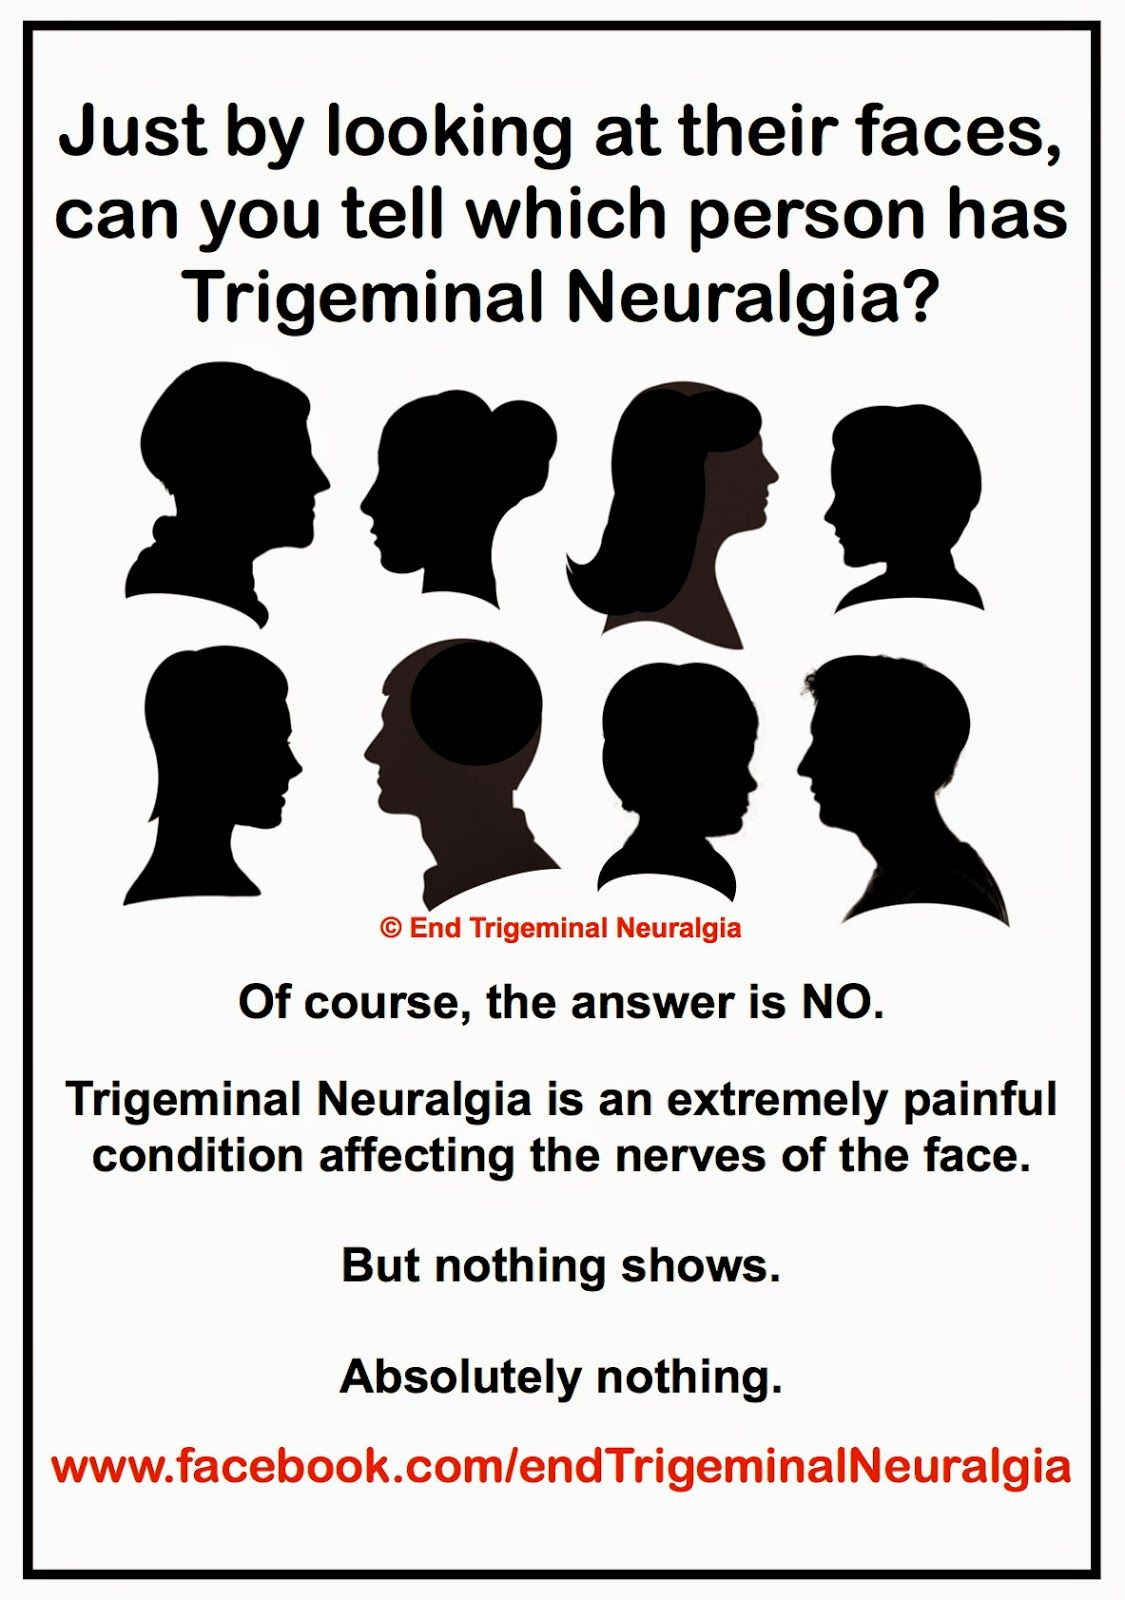 End Trigeminal Neuralgia Invisible Conditions